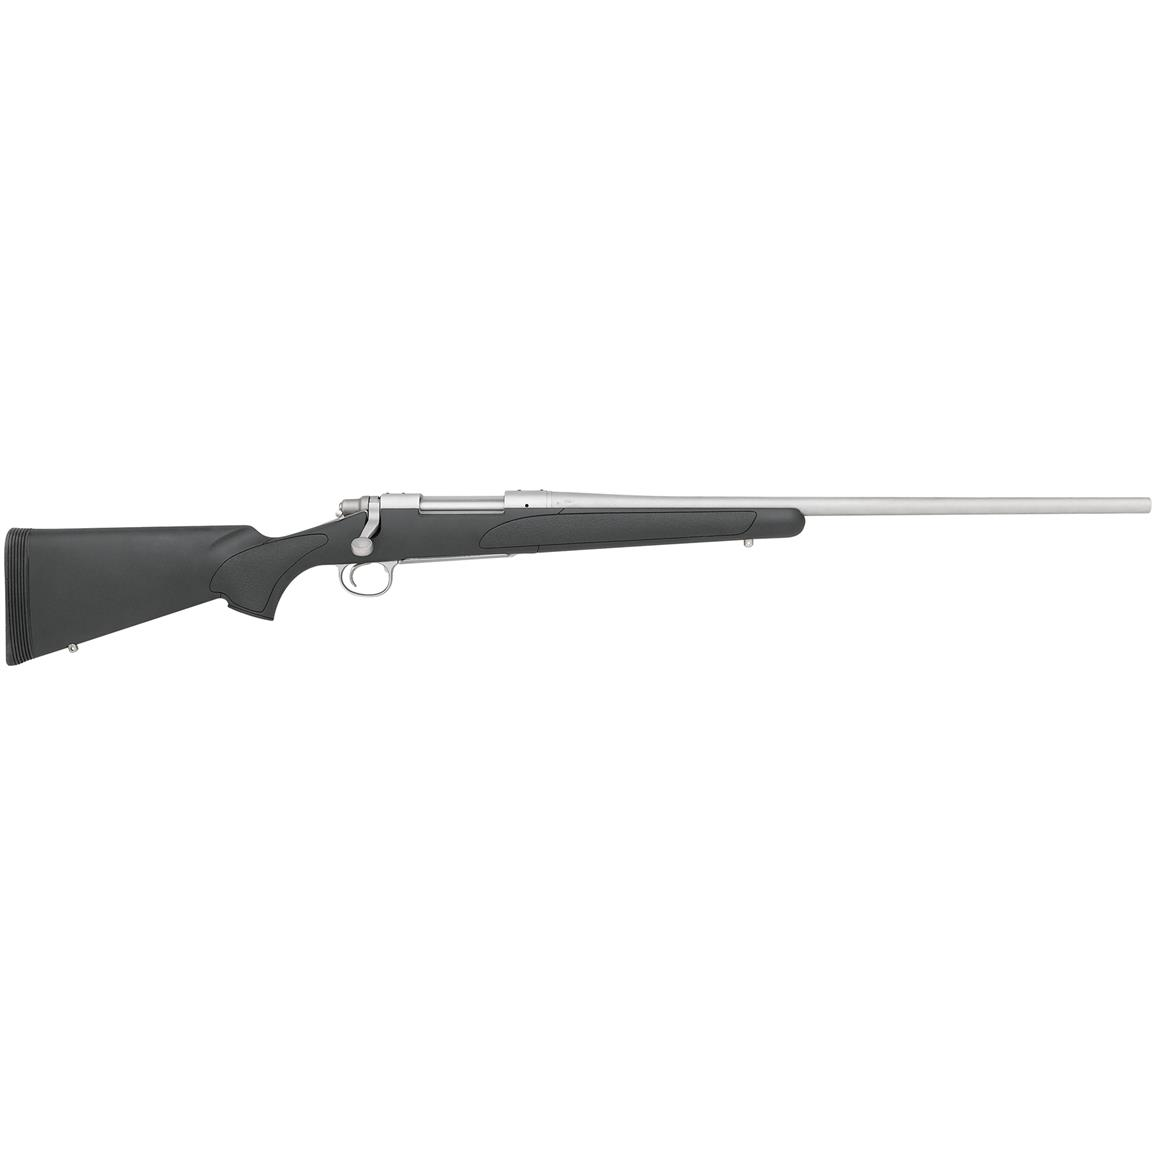 Remington 700 SPS Stainless, Bolt Action, .270 WSM, Centerfire, 27253, 047700272535